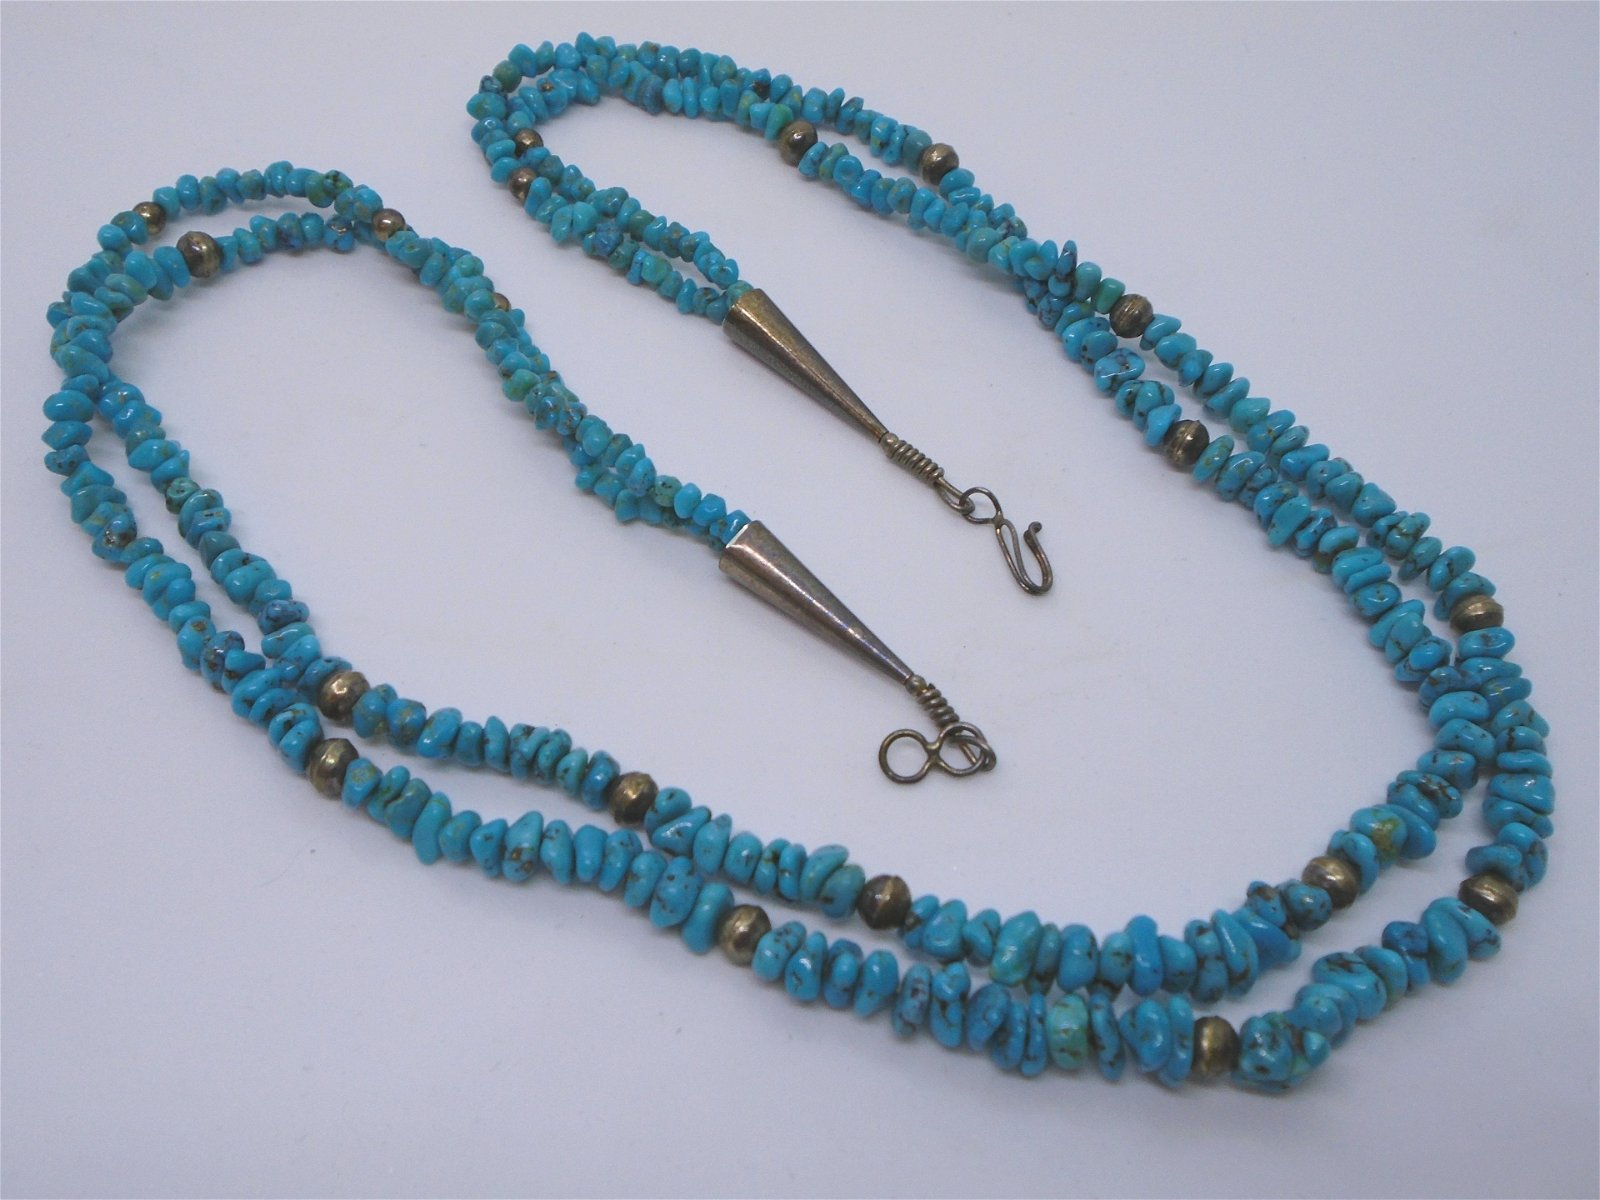 MORENCI TURQUOISE NECKLACE STERLING SILVER BEADS